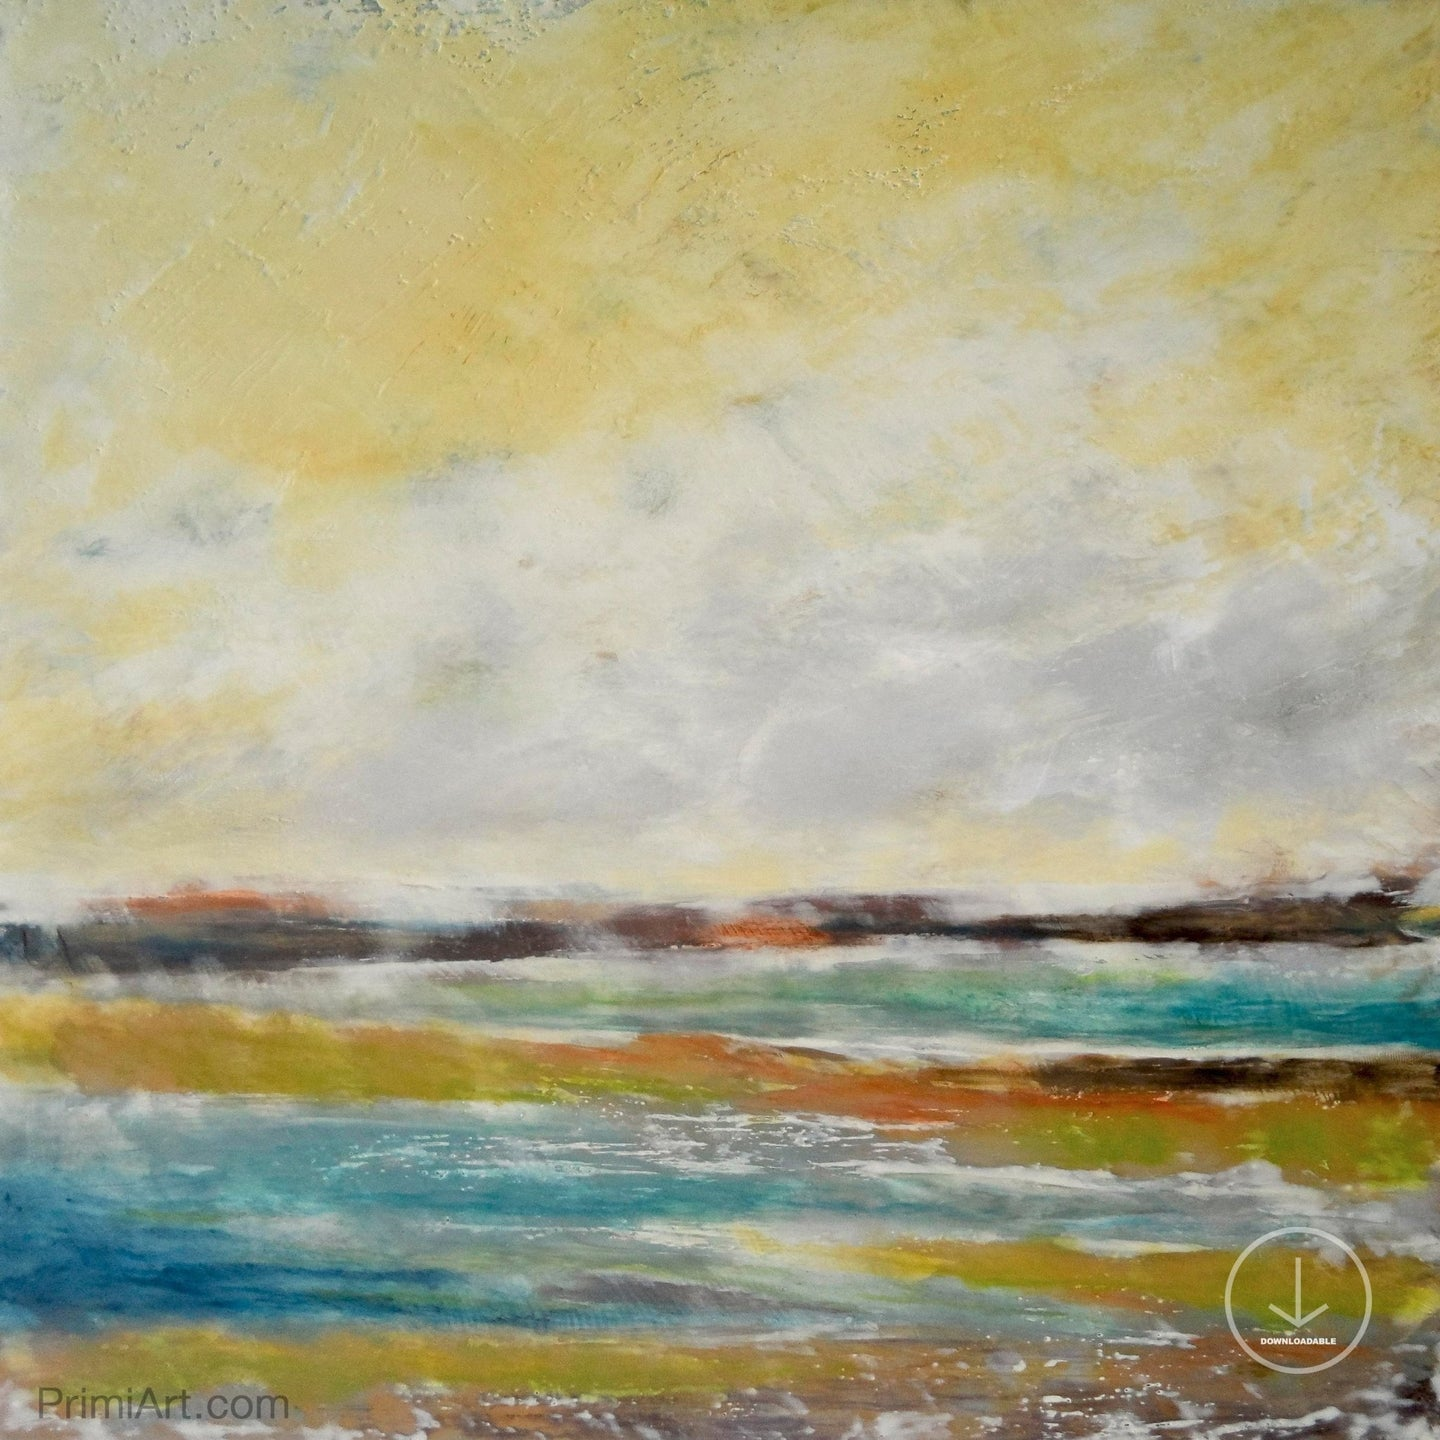 Coastal abstract landscape painting